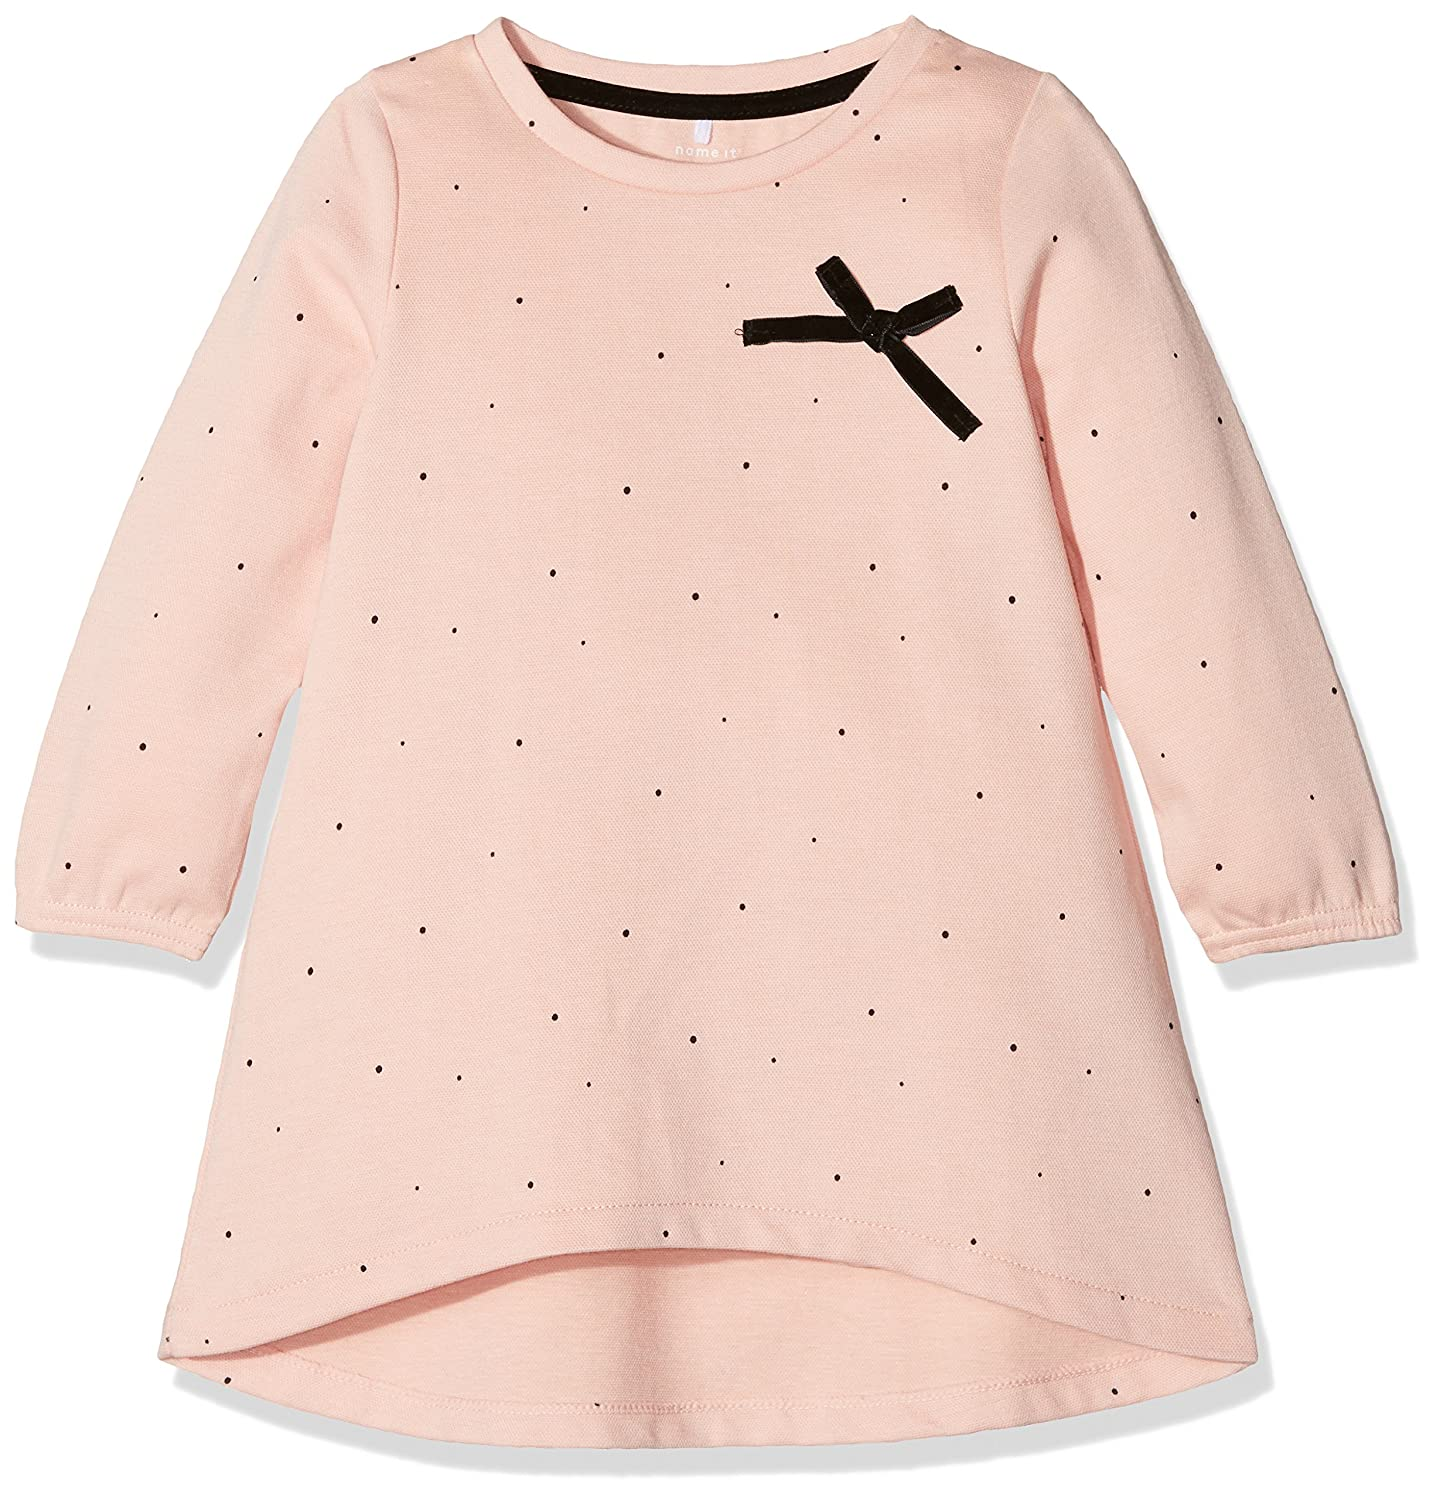 NAME IT Baby-Mädchen Langarmshirt Nitfimola LS Tunic F Mini Rosa (Evening Sand) 104 13146233